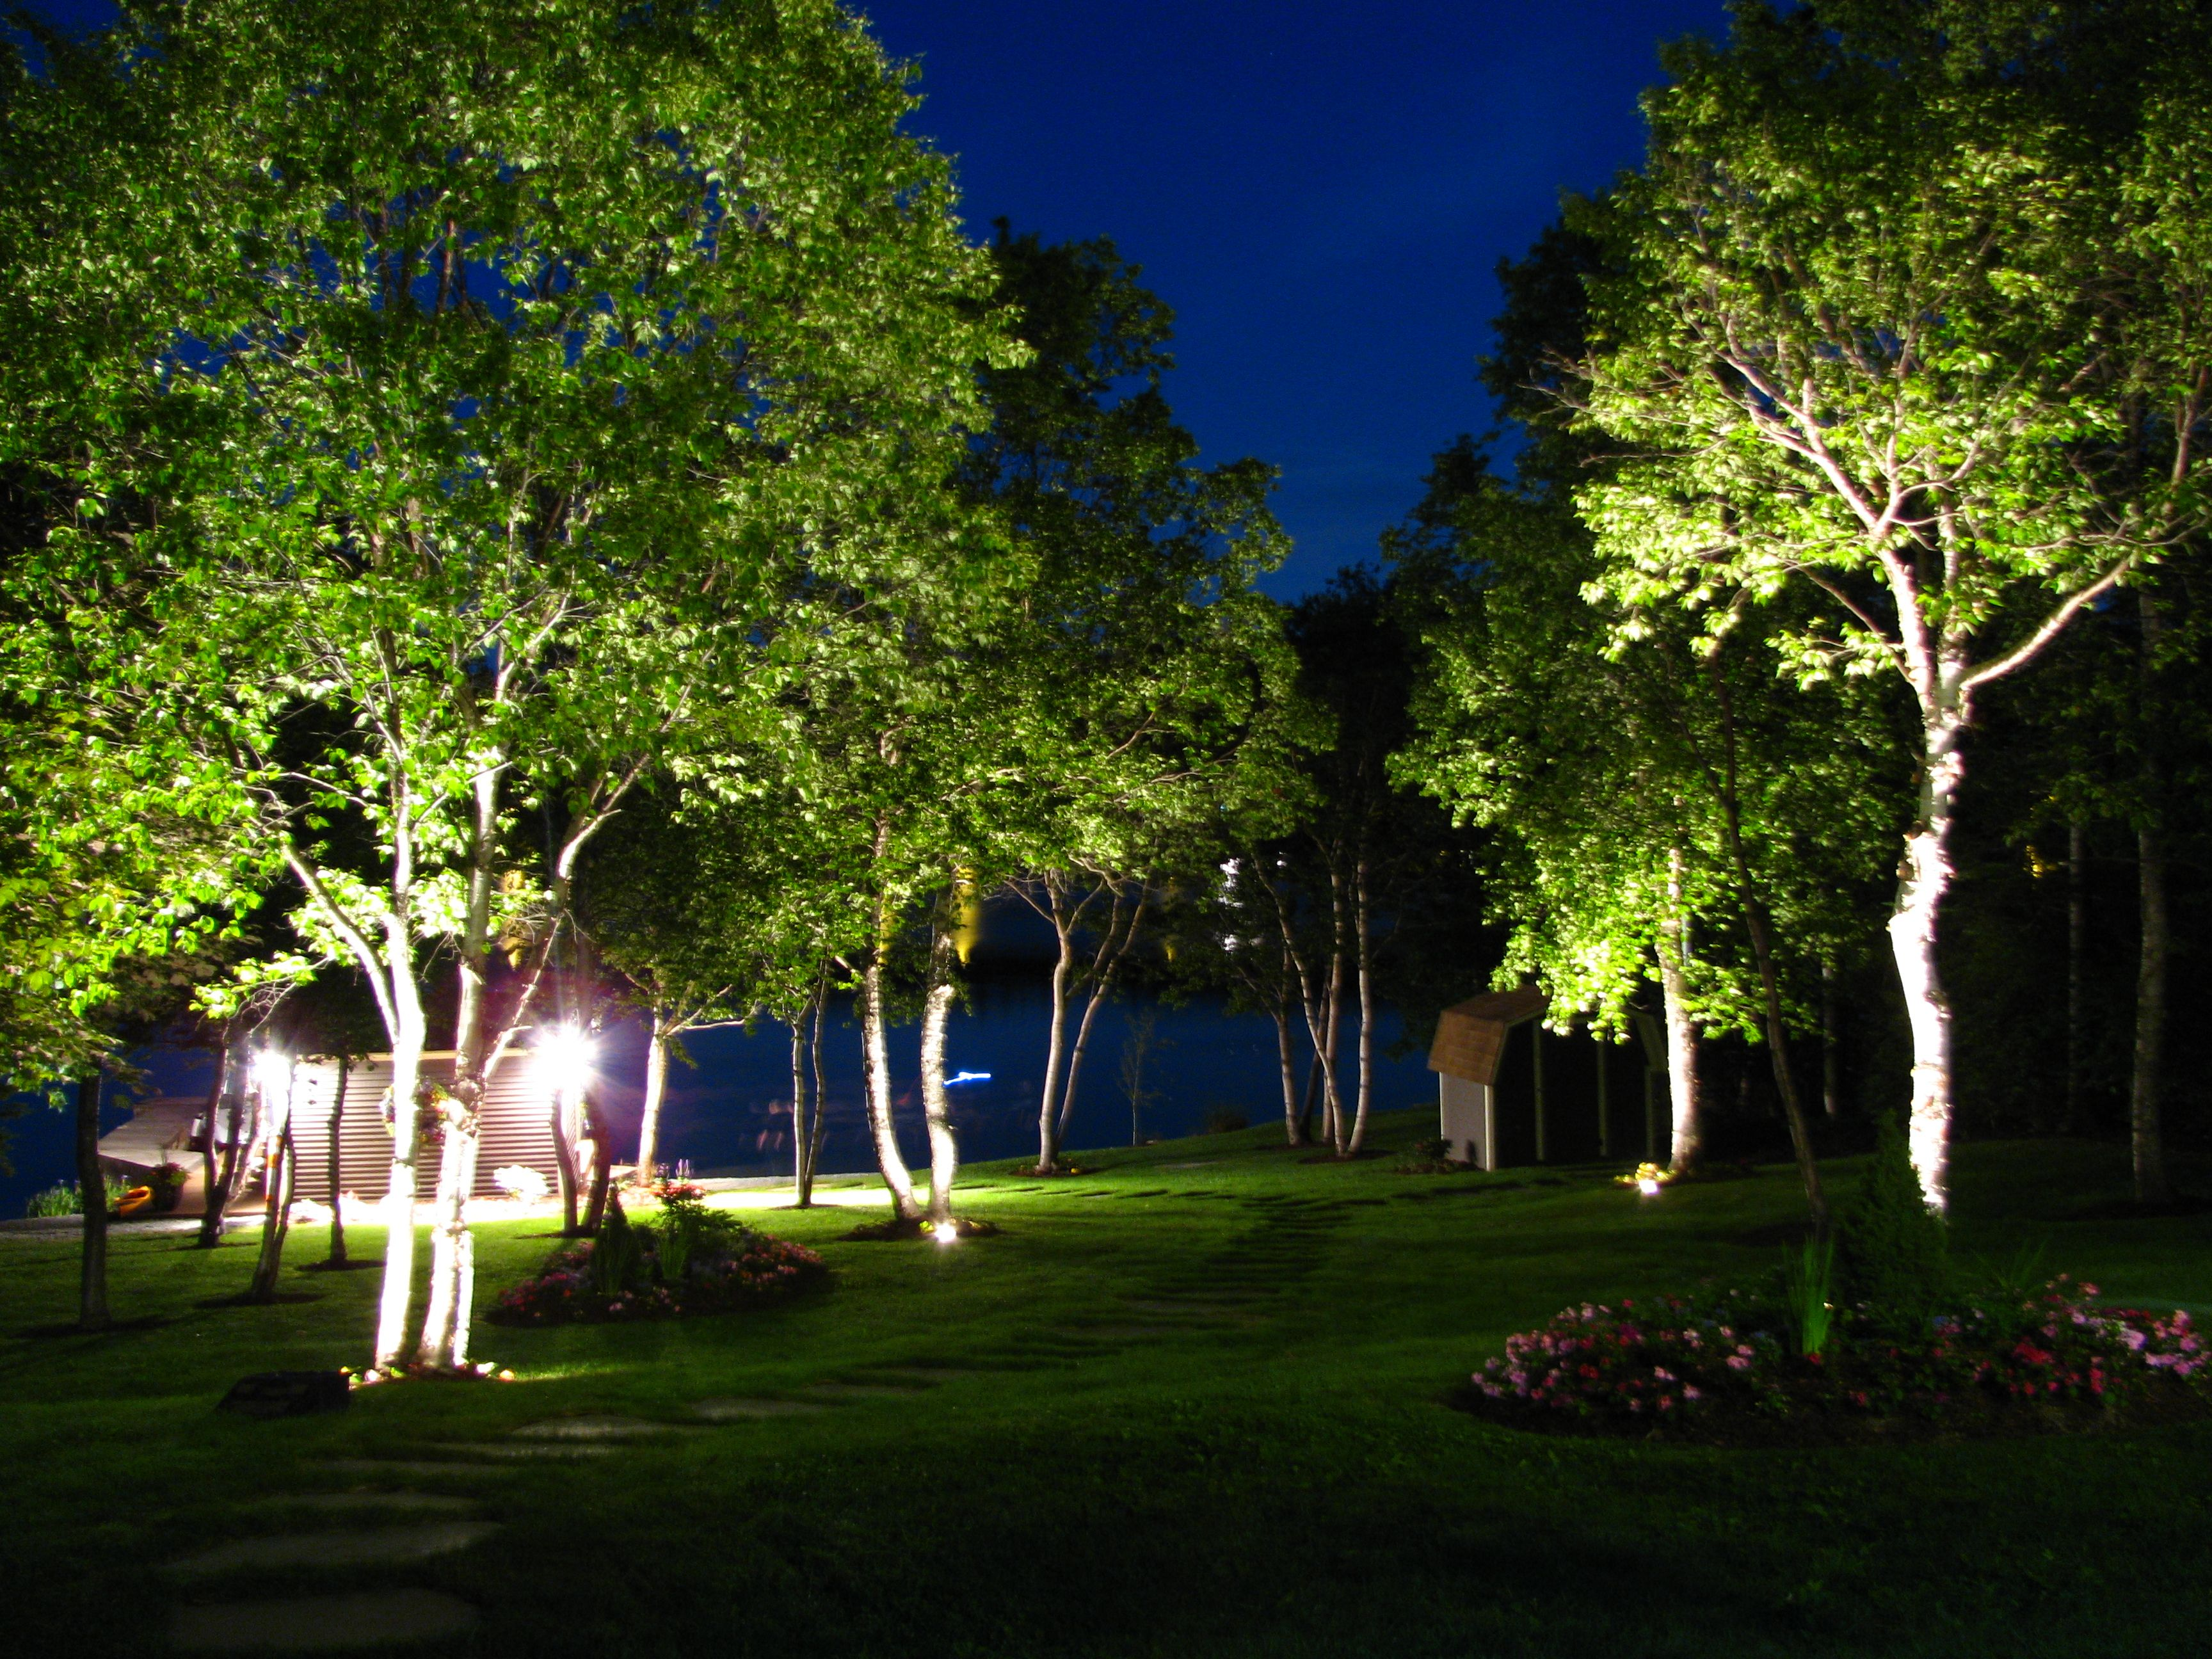 Hunza Metal Hallide Well Lights - Daisy Design & Hunza Metal Hallide Well Lights - Daisy Design | Garden Spaces ... azcodes.com